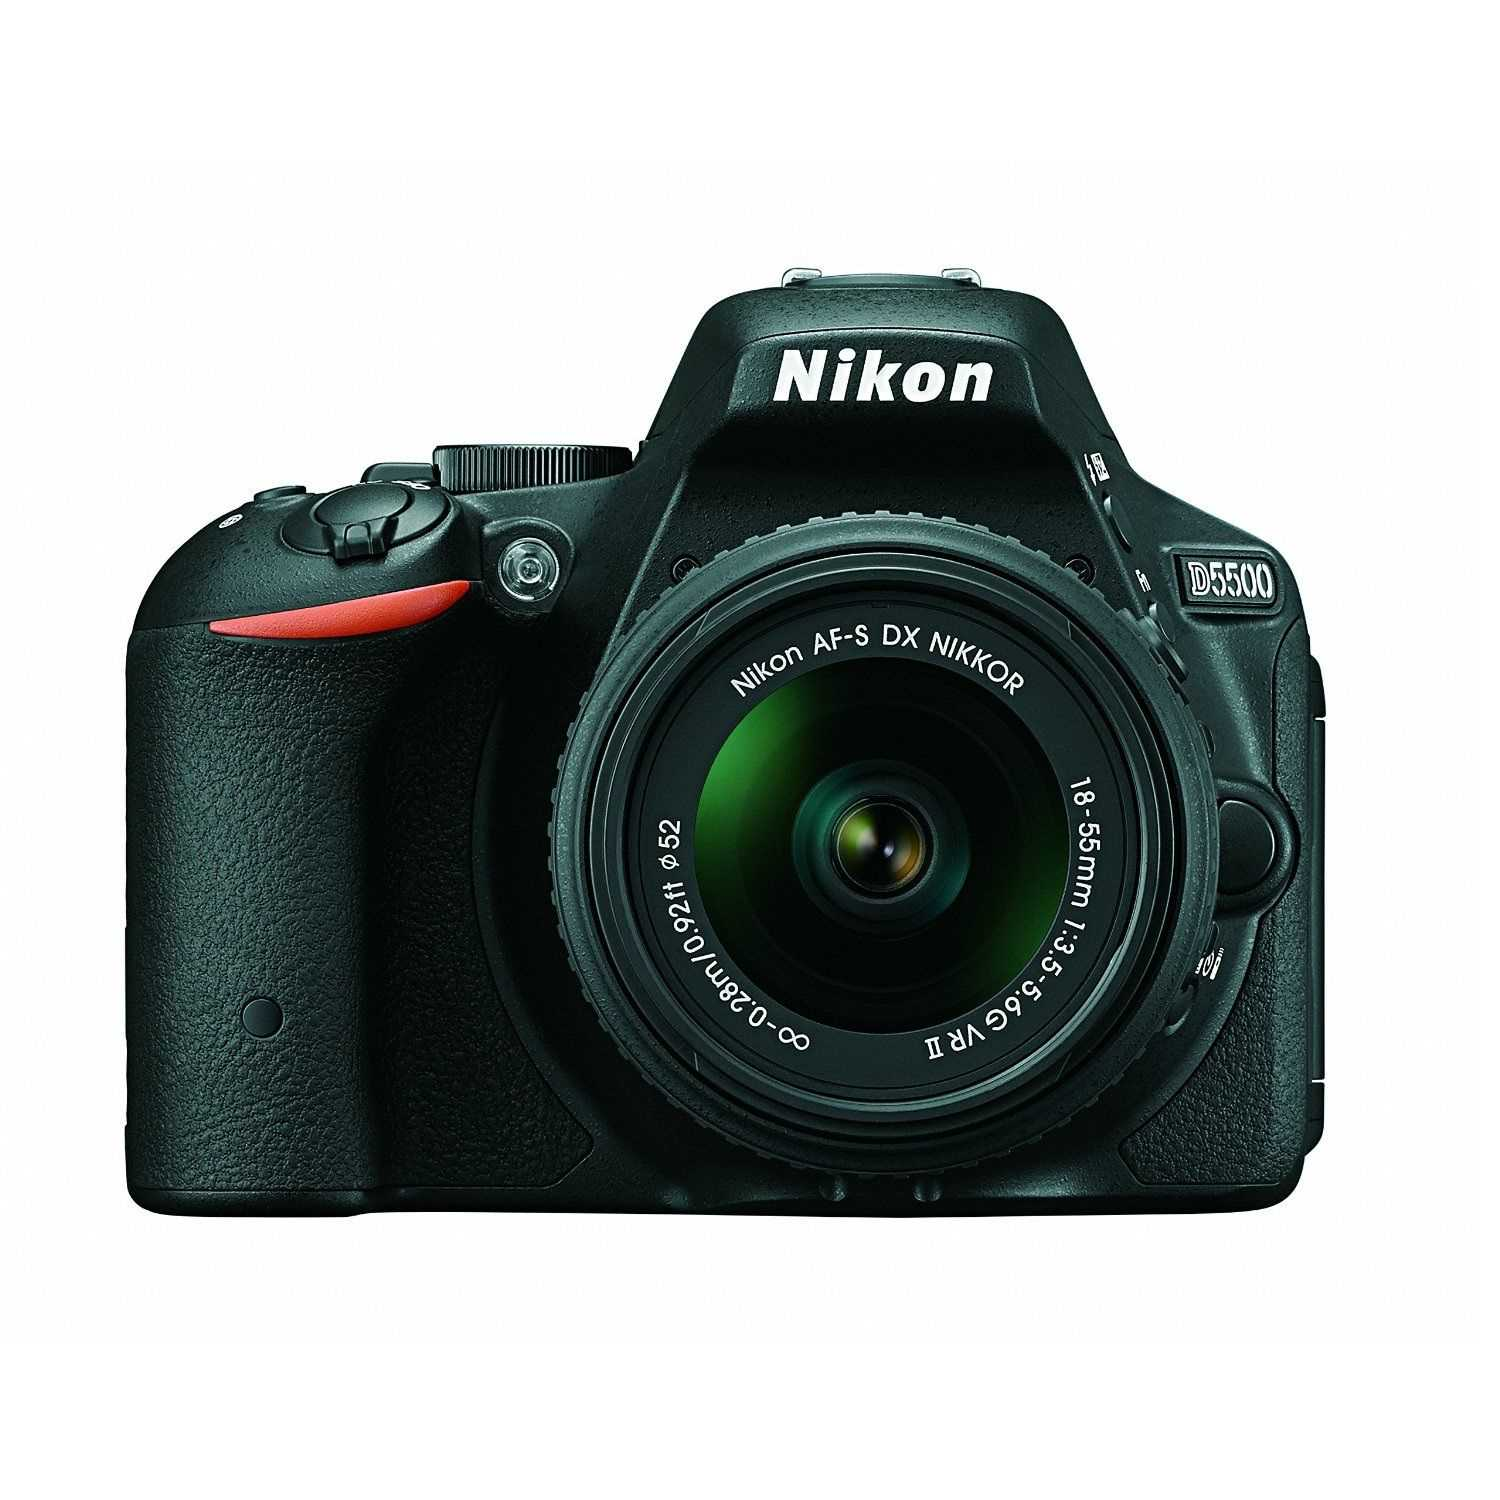 Camera List Of All Nikon Dslr Cameras nikon camera price list in india 2017 lowest prices d5500 18 55 mm lens